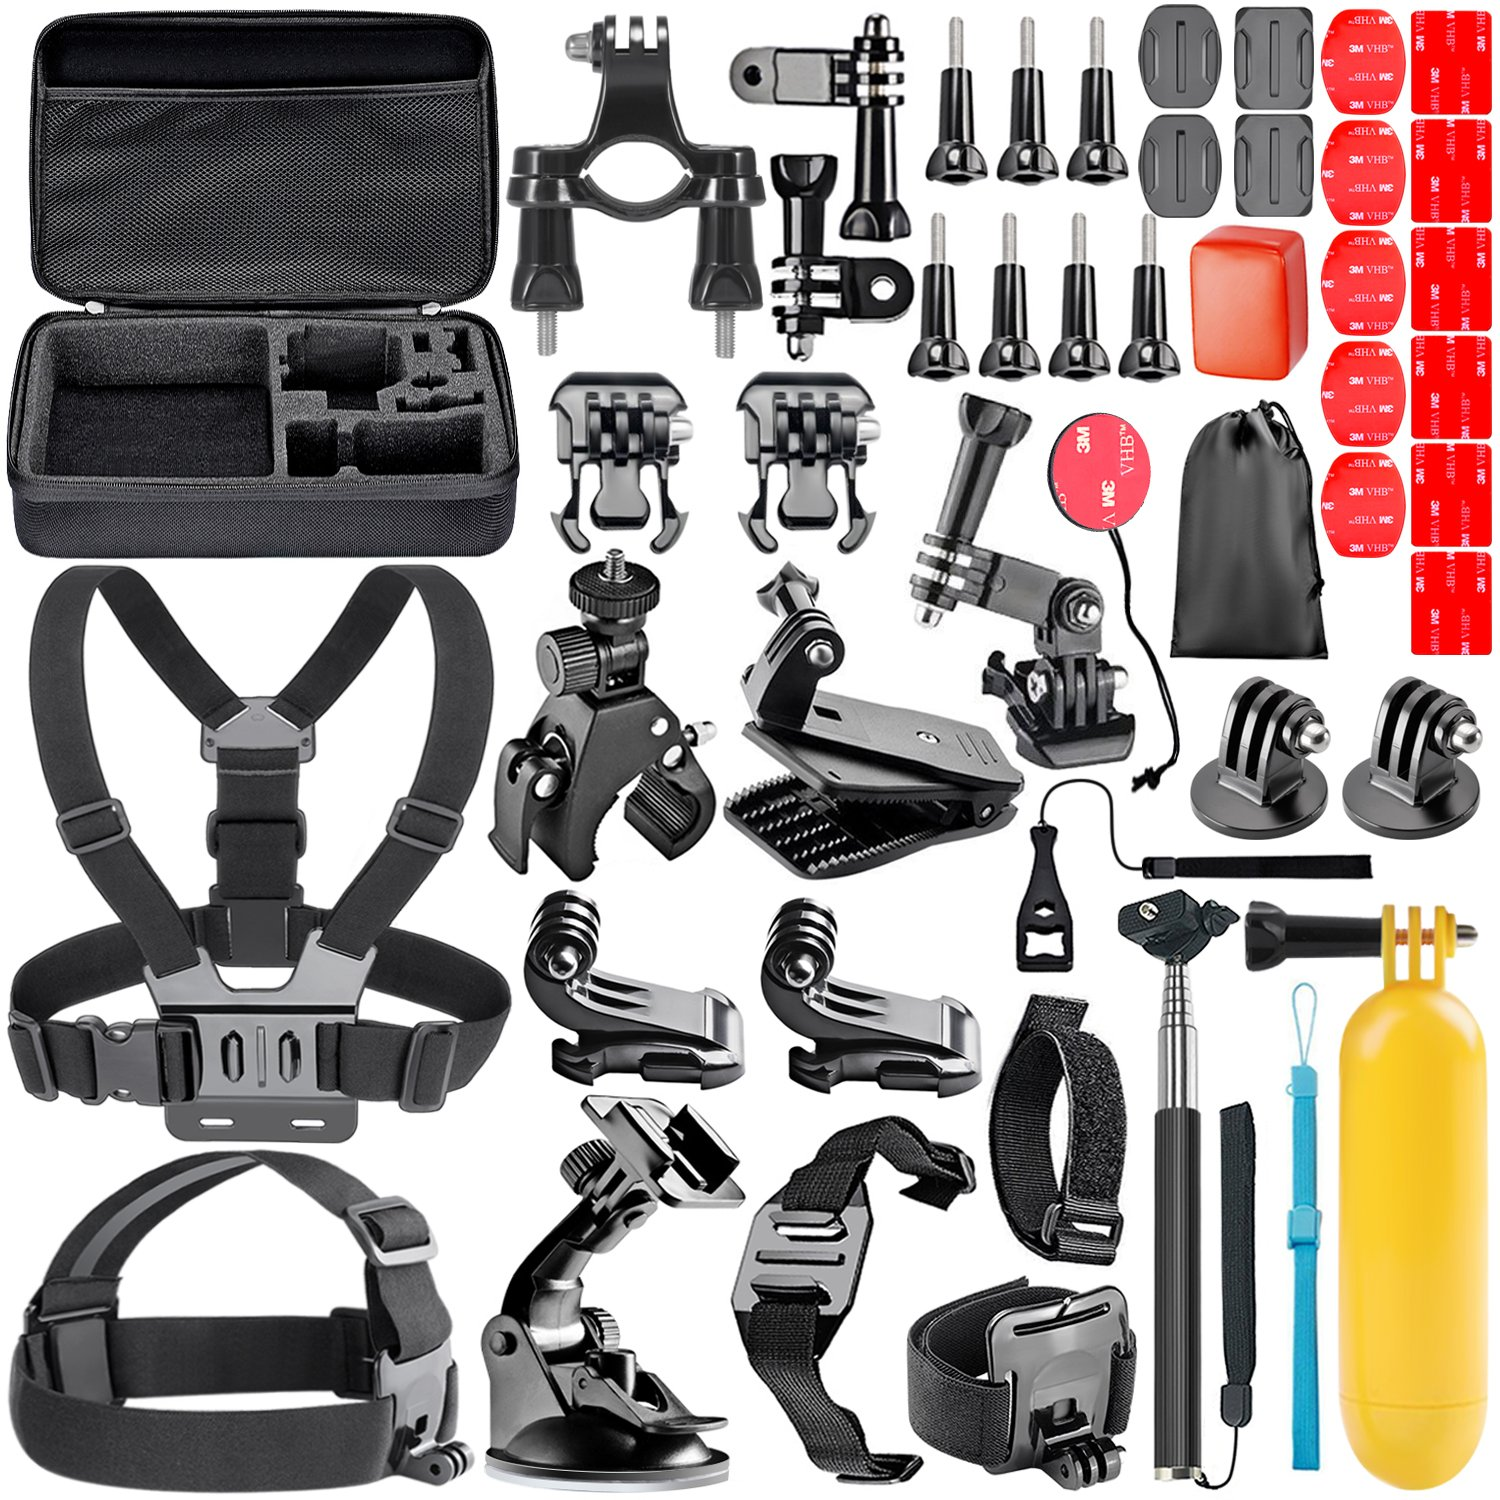 Neewer All In 1 Action Camera Accessory Kit For Gopro Telkomsel 17 Hero Session 5 2 3 4 6 Sj4000 5000 6000 Dbpower Akaso Victsing Apeman Wimius